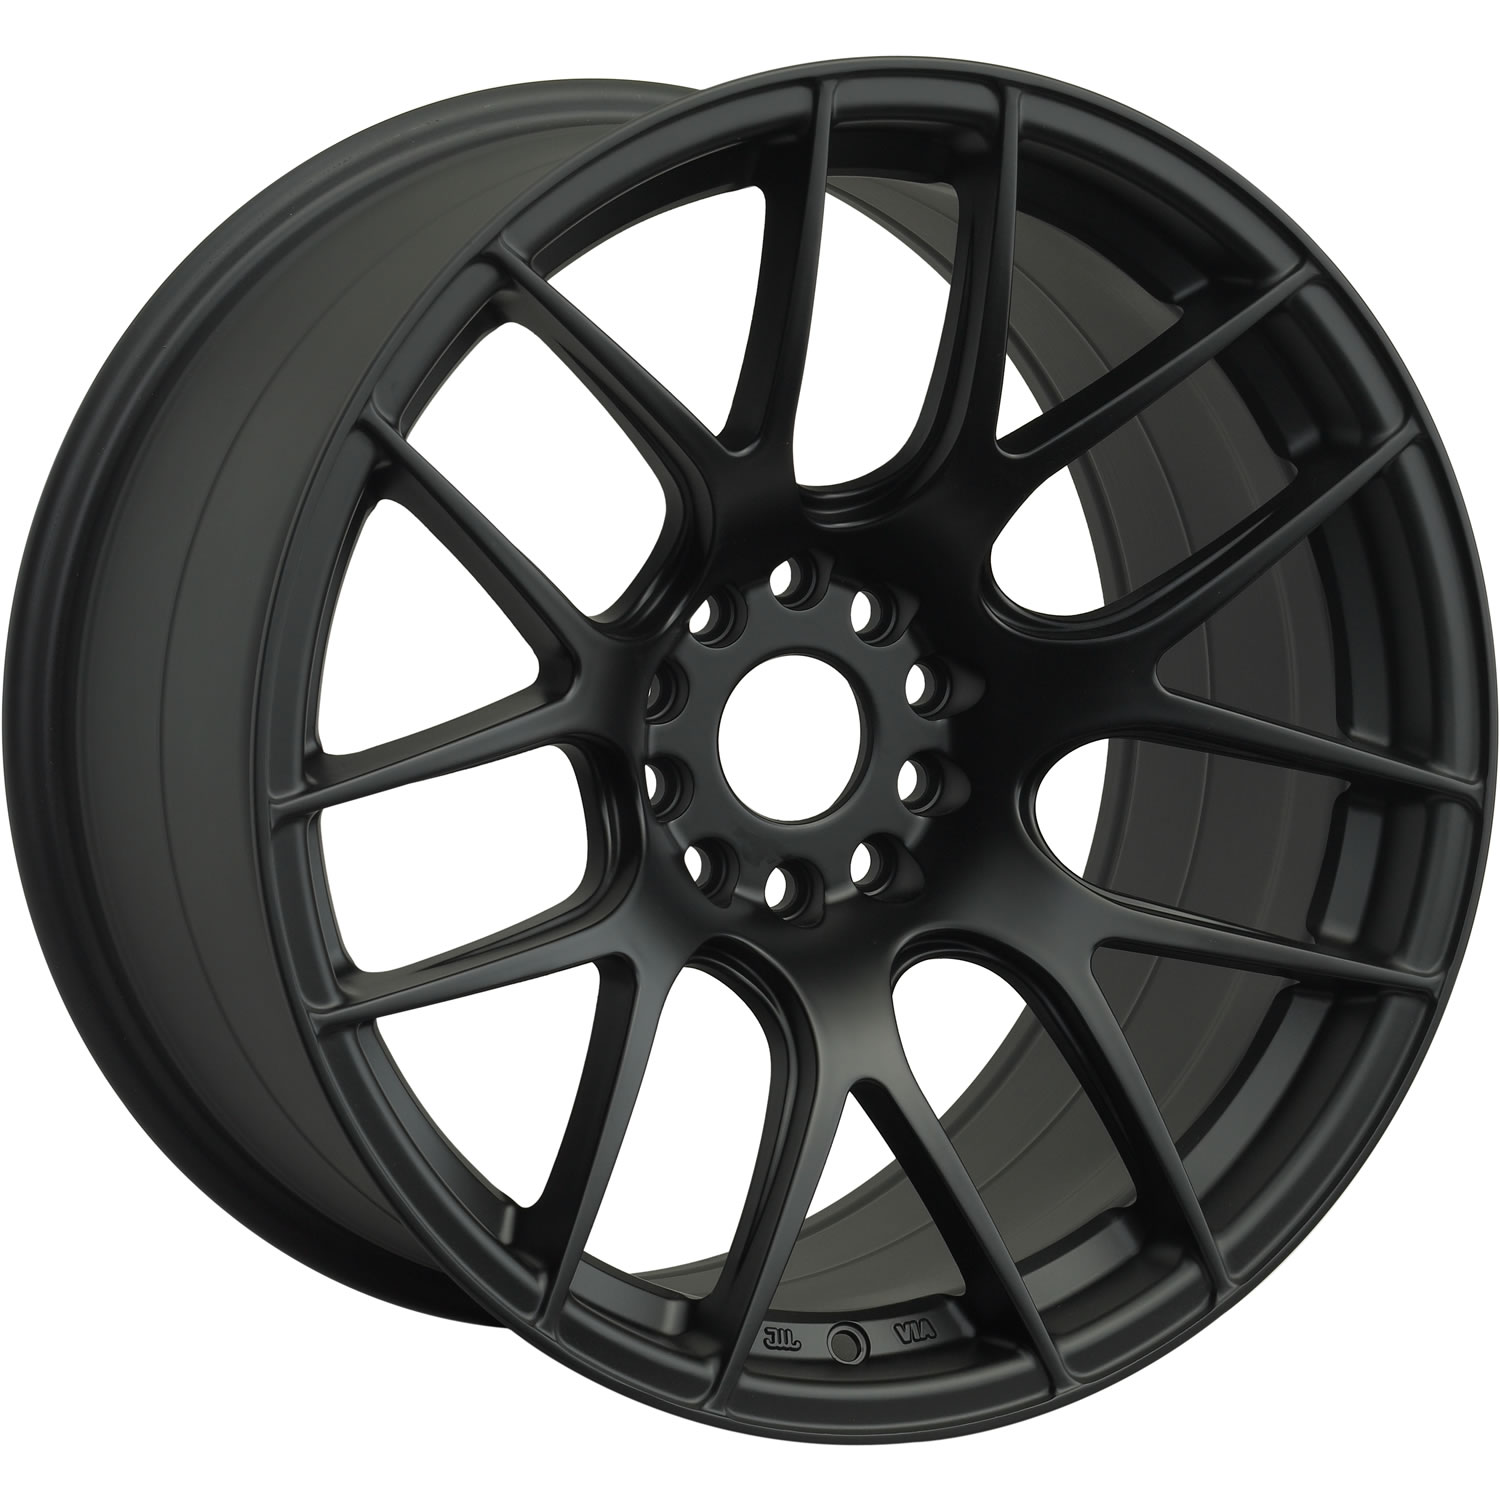 Online Tire Store >> Xxr 530 18x75 38 Custom Wheels